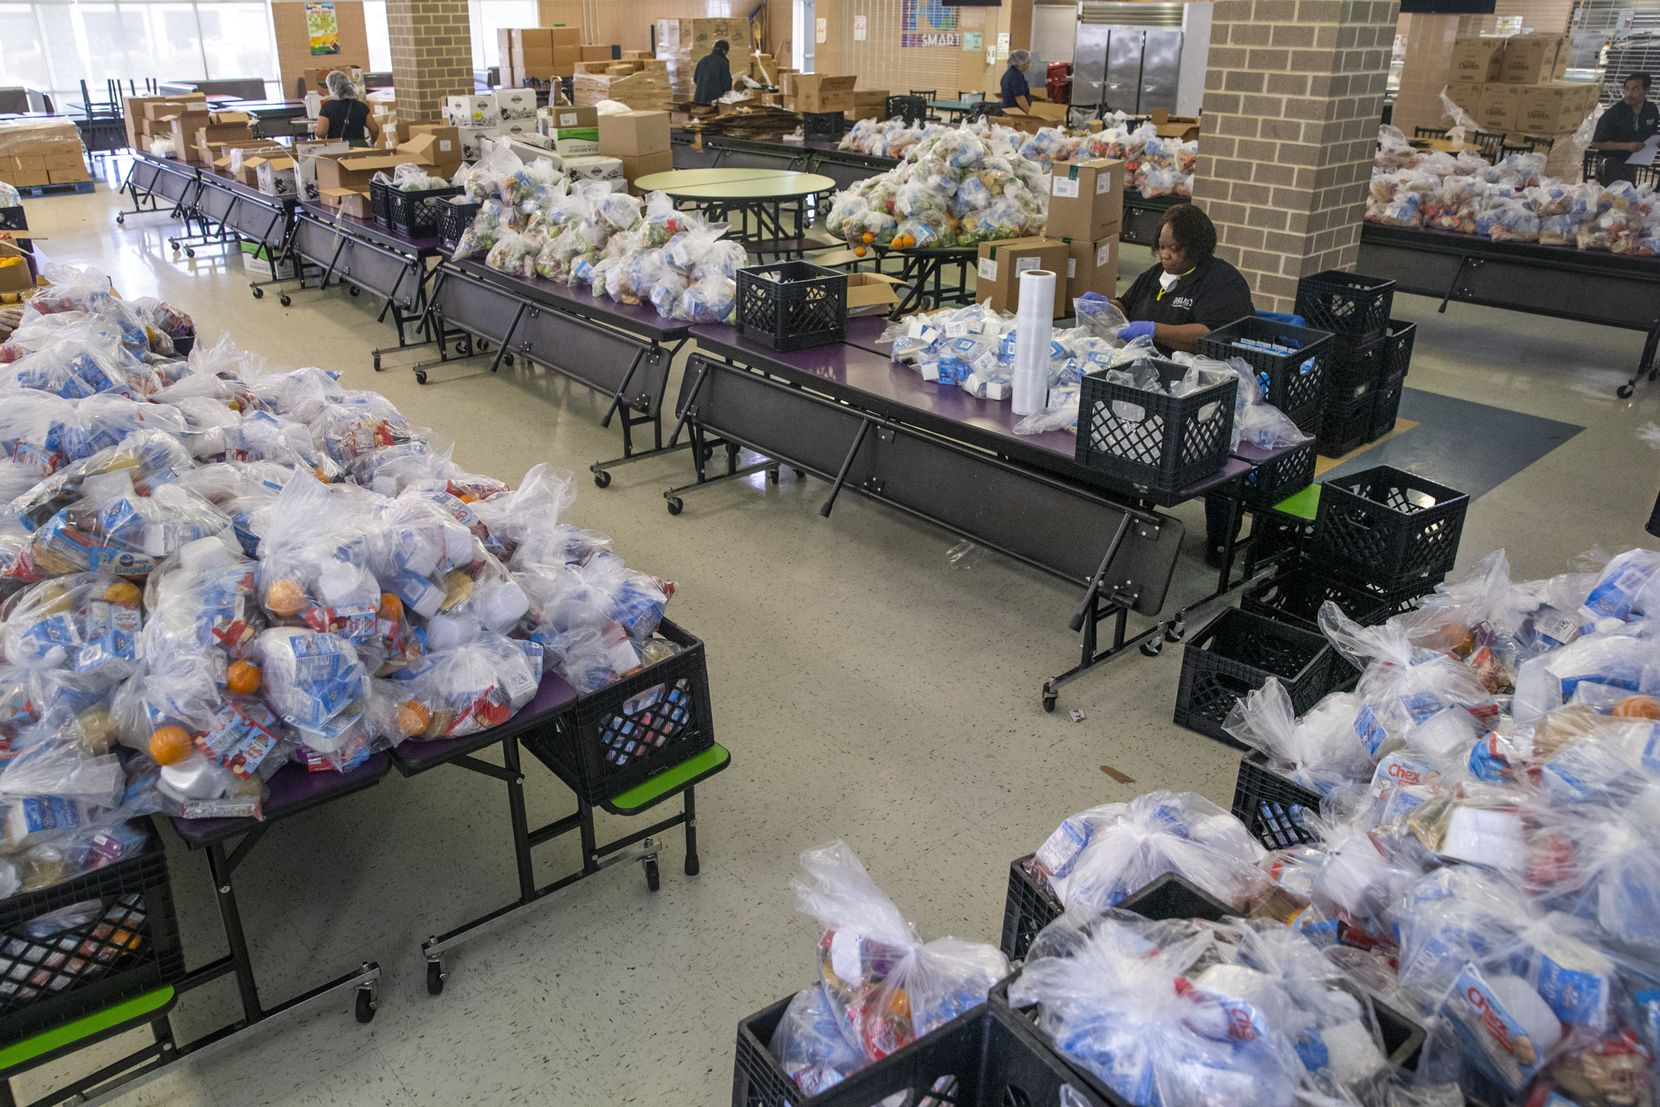 Dallas ISD employees and volunteers prepared bagged breakfasts, lunches and suppers for students at Medrano Middle School in Dallas on Thursday. For many students' families, normal food insecurity has been exacerbated by COVID-19 closures.